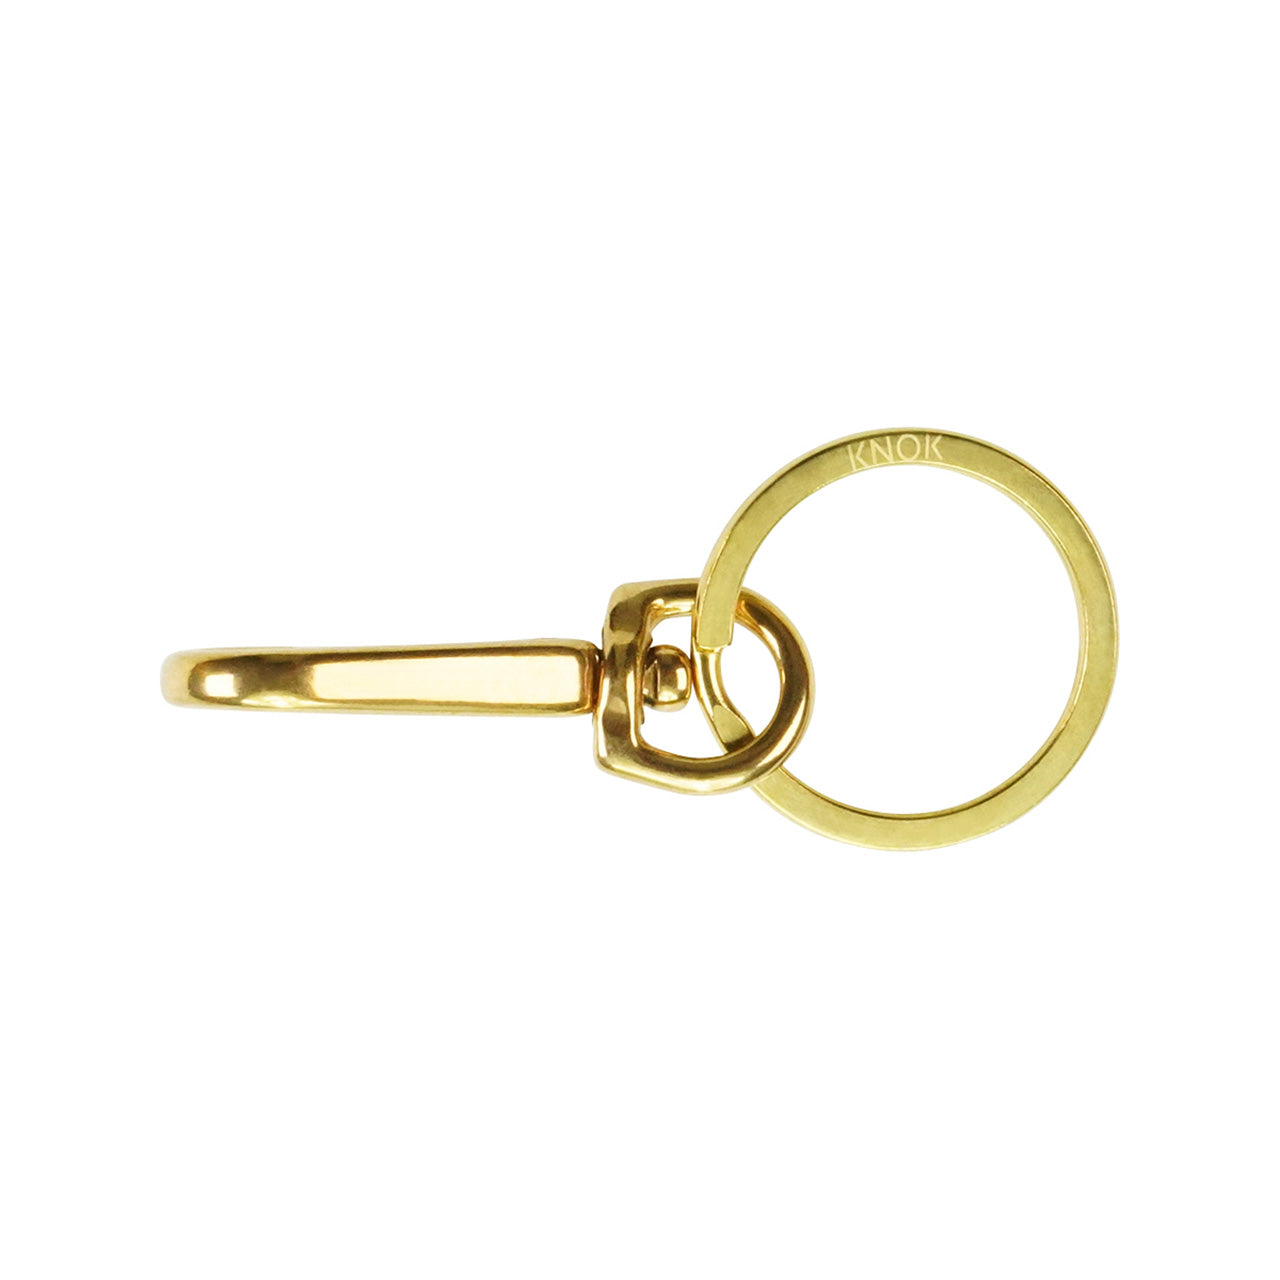 KNOK-Key-hook-brass